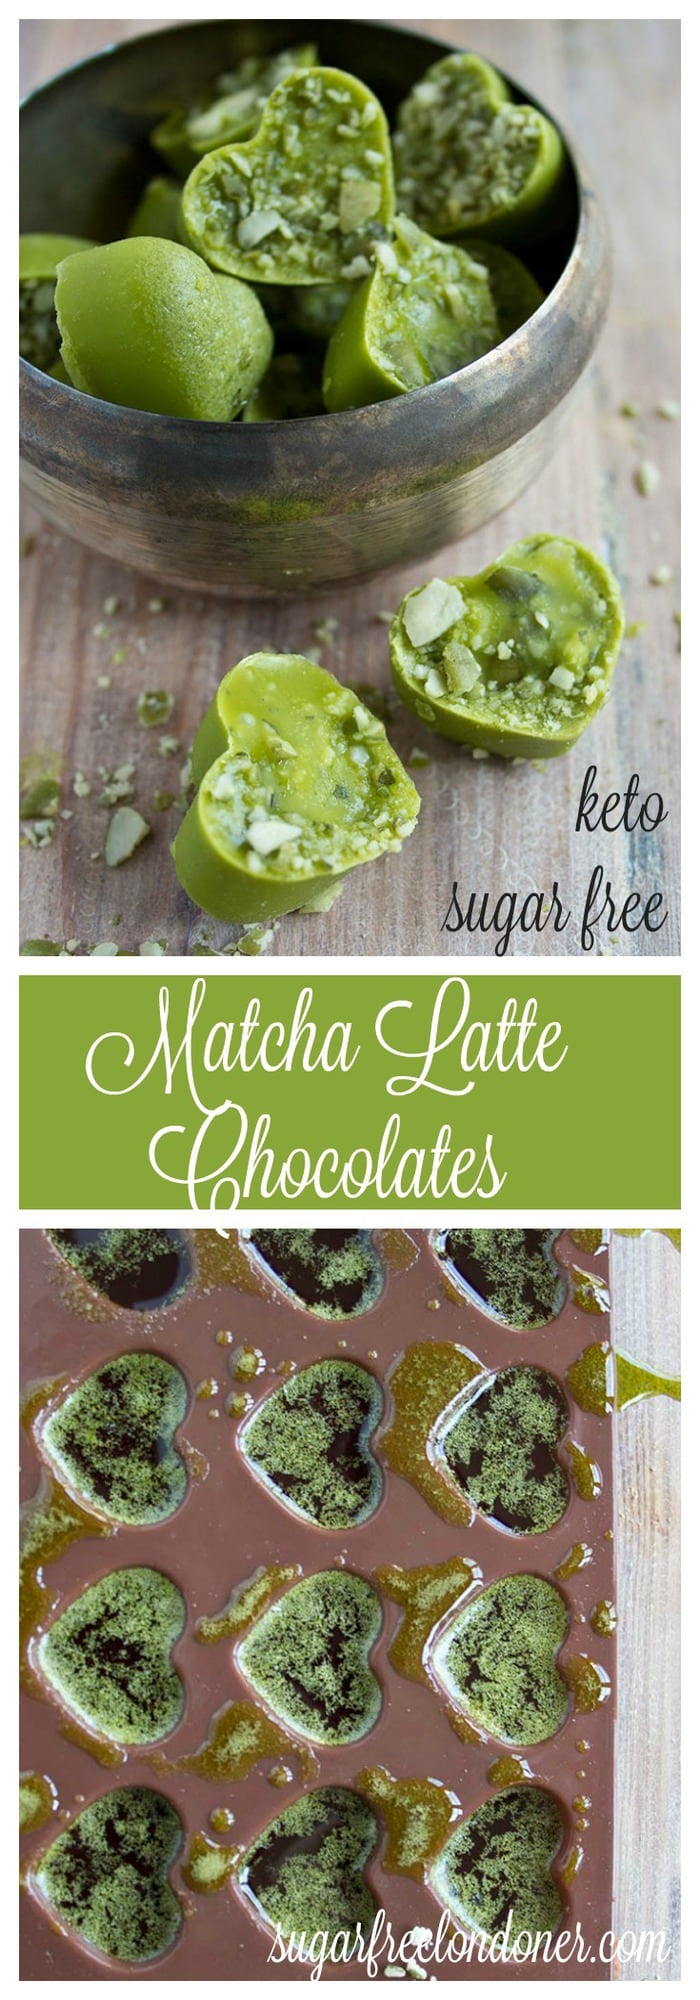 A delicious and easy keto green tea chocolate treat: These matcha chocolates are not only bursting with antioxidants, they're sugar free, too! #matcha #chocolate #sugar free #lowcarb